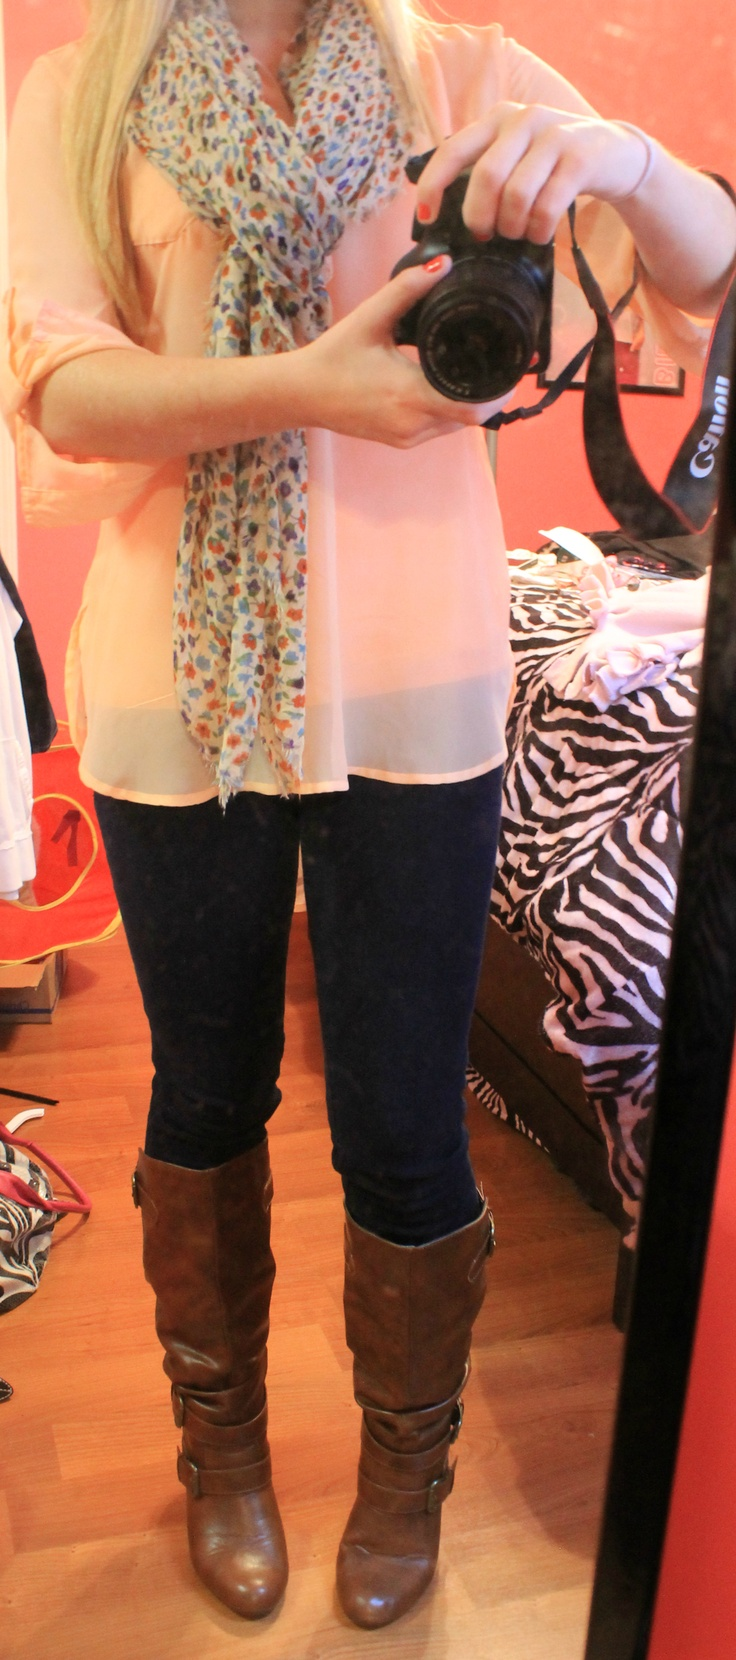 top from rue 21, jeans from hollister, boots from famous footwear & scarf from target! early spring outfit! :)